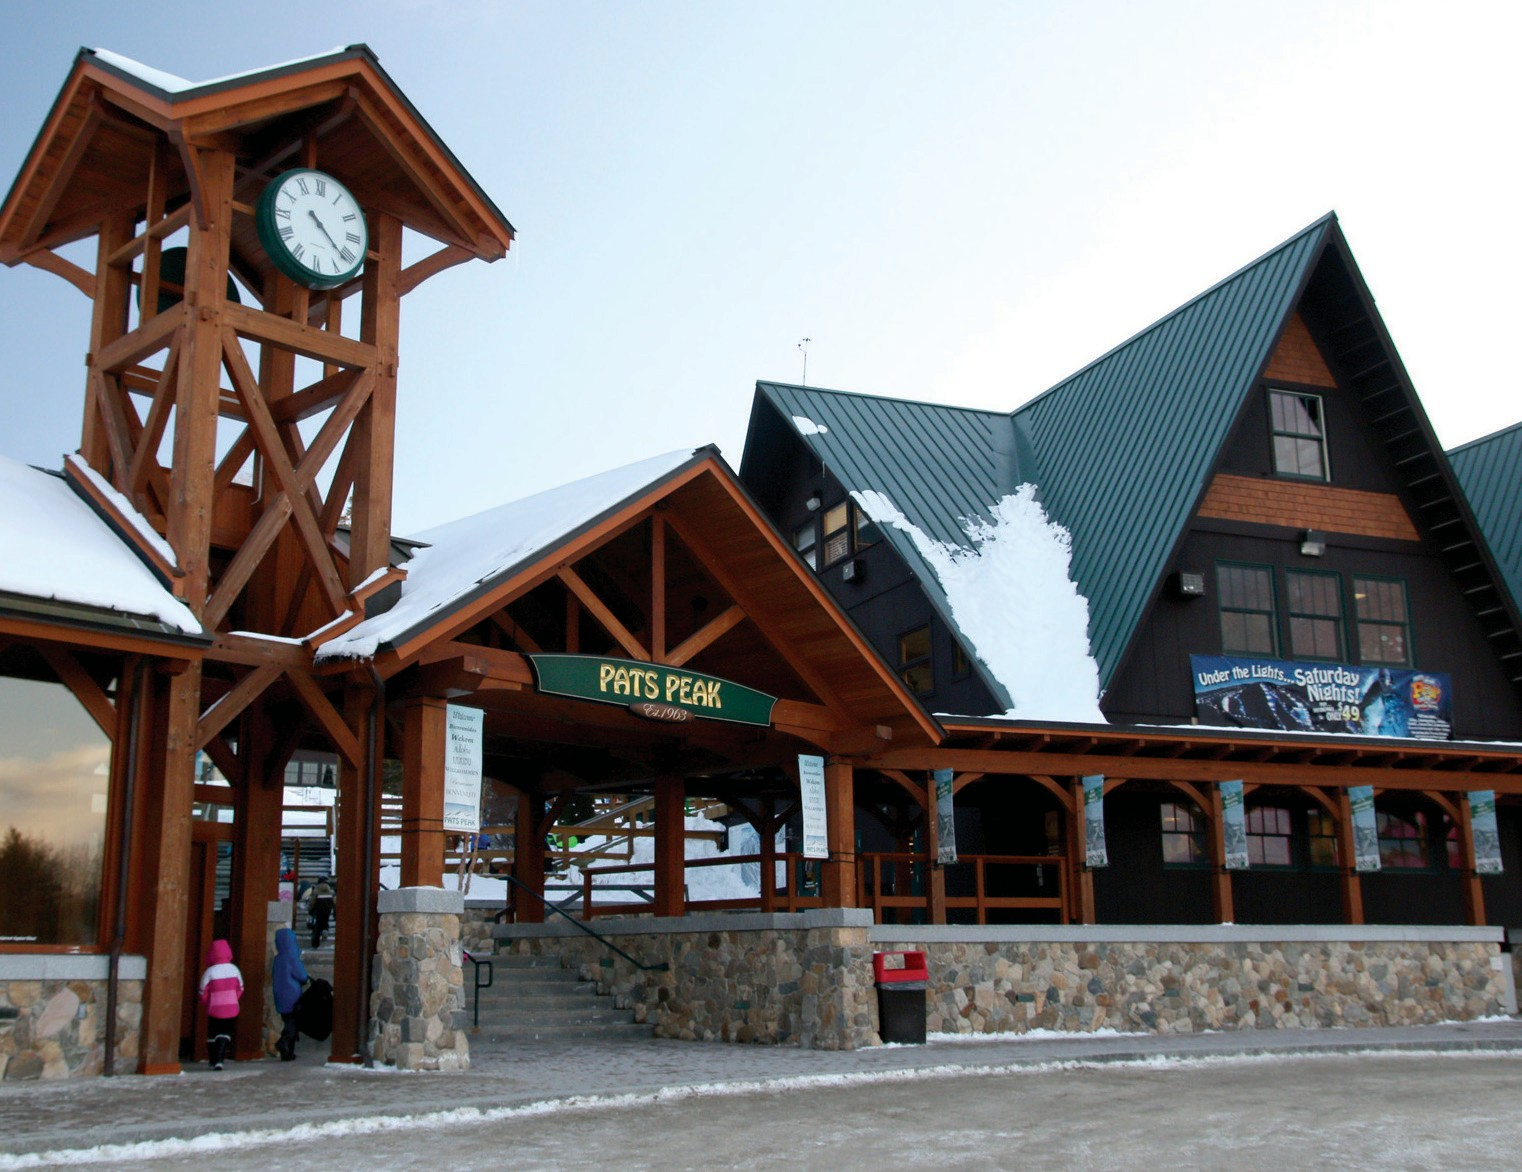 Pictured here is the front entrance of Pat's Peak in Henniker, New Hampshire.